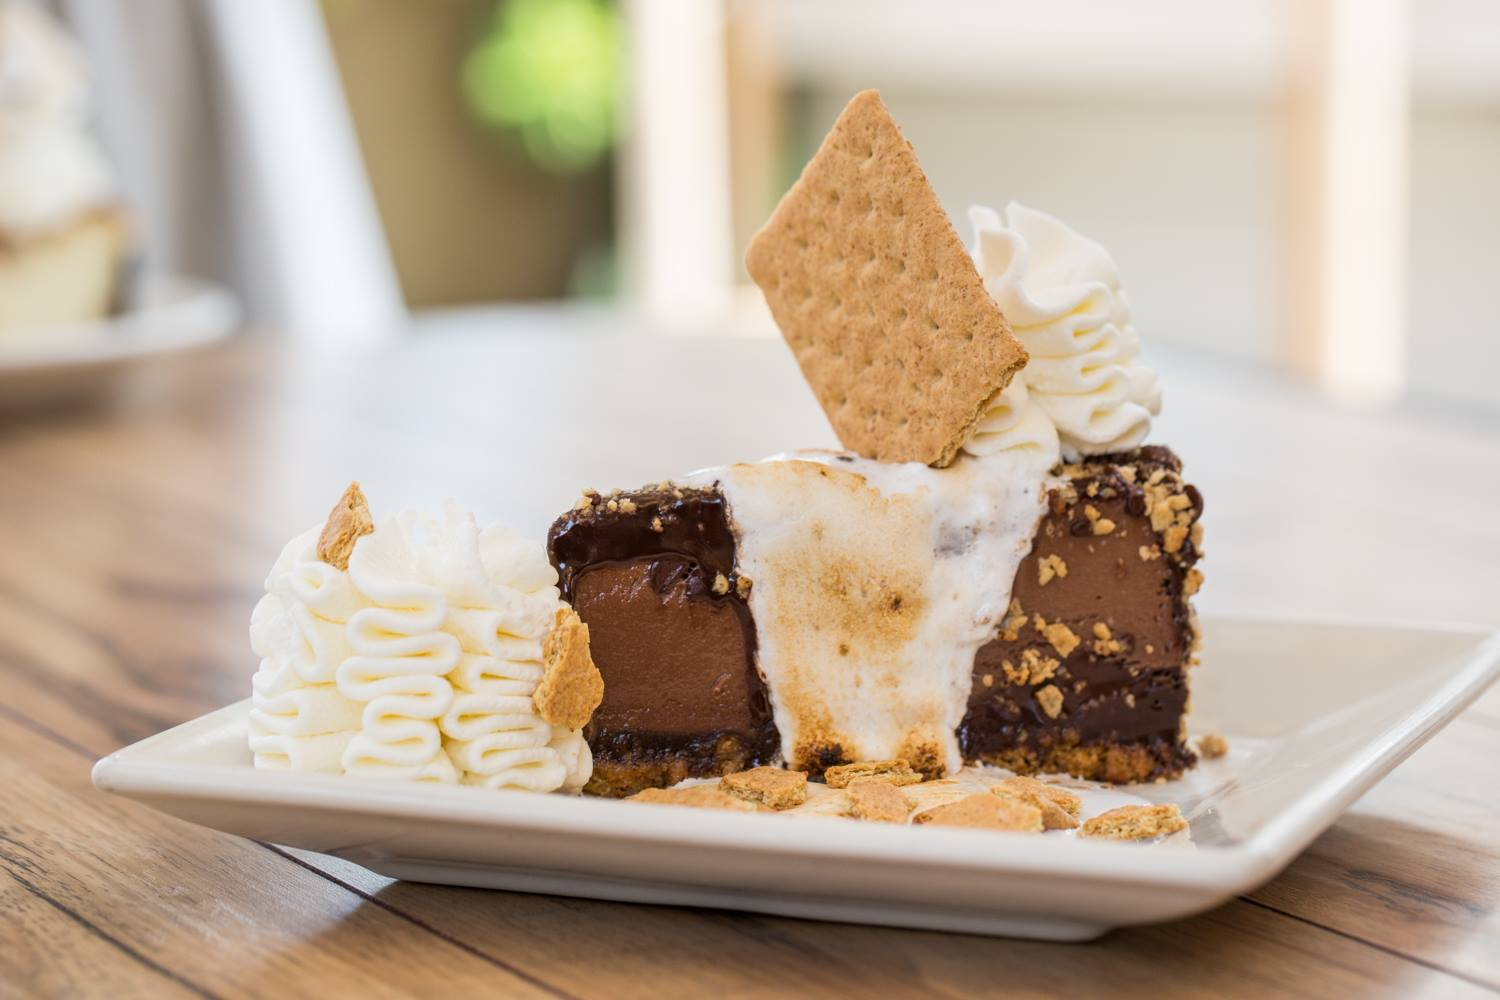 S'mores Cheesecake at The Cheesecake Factory